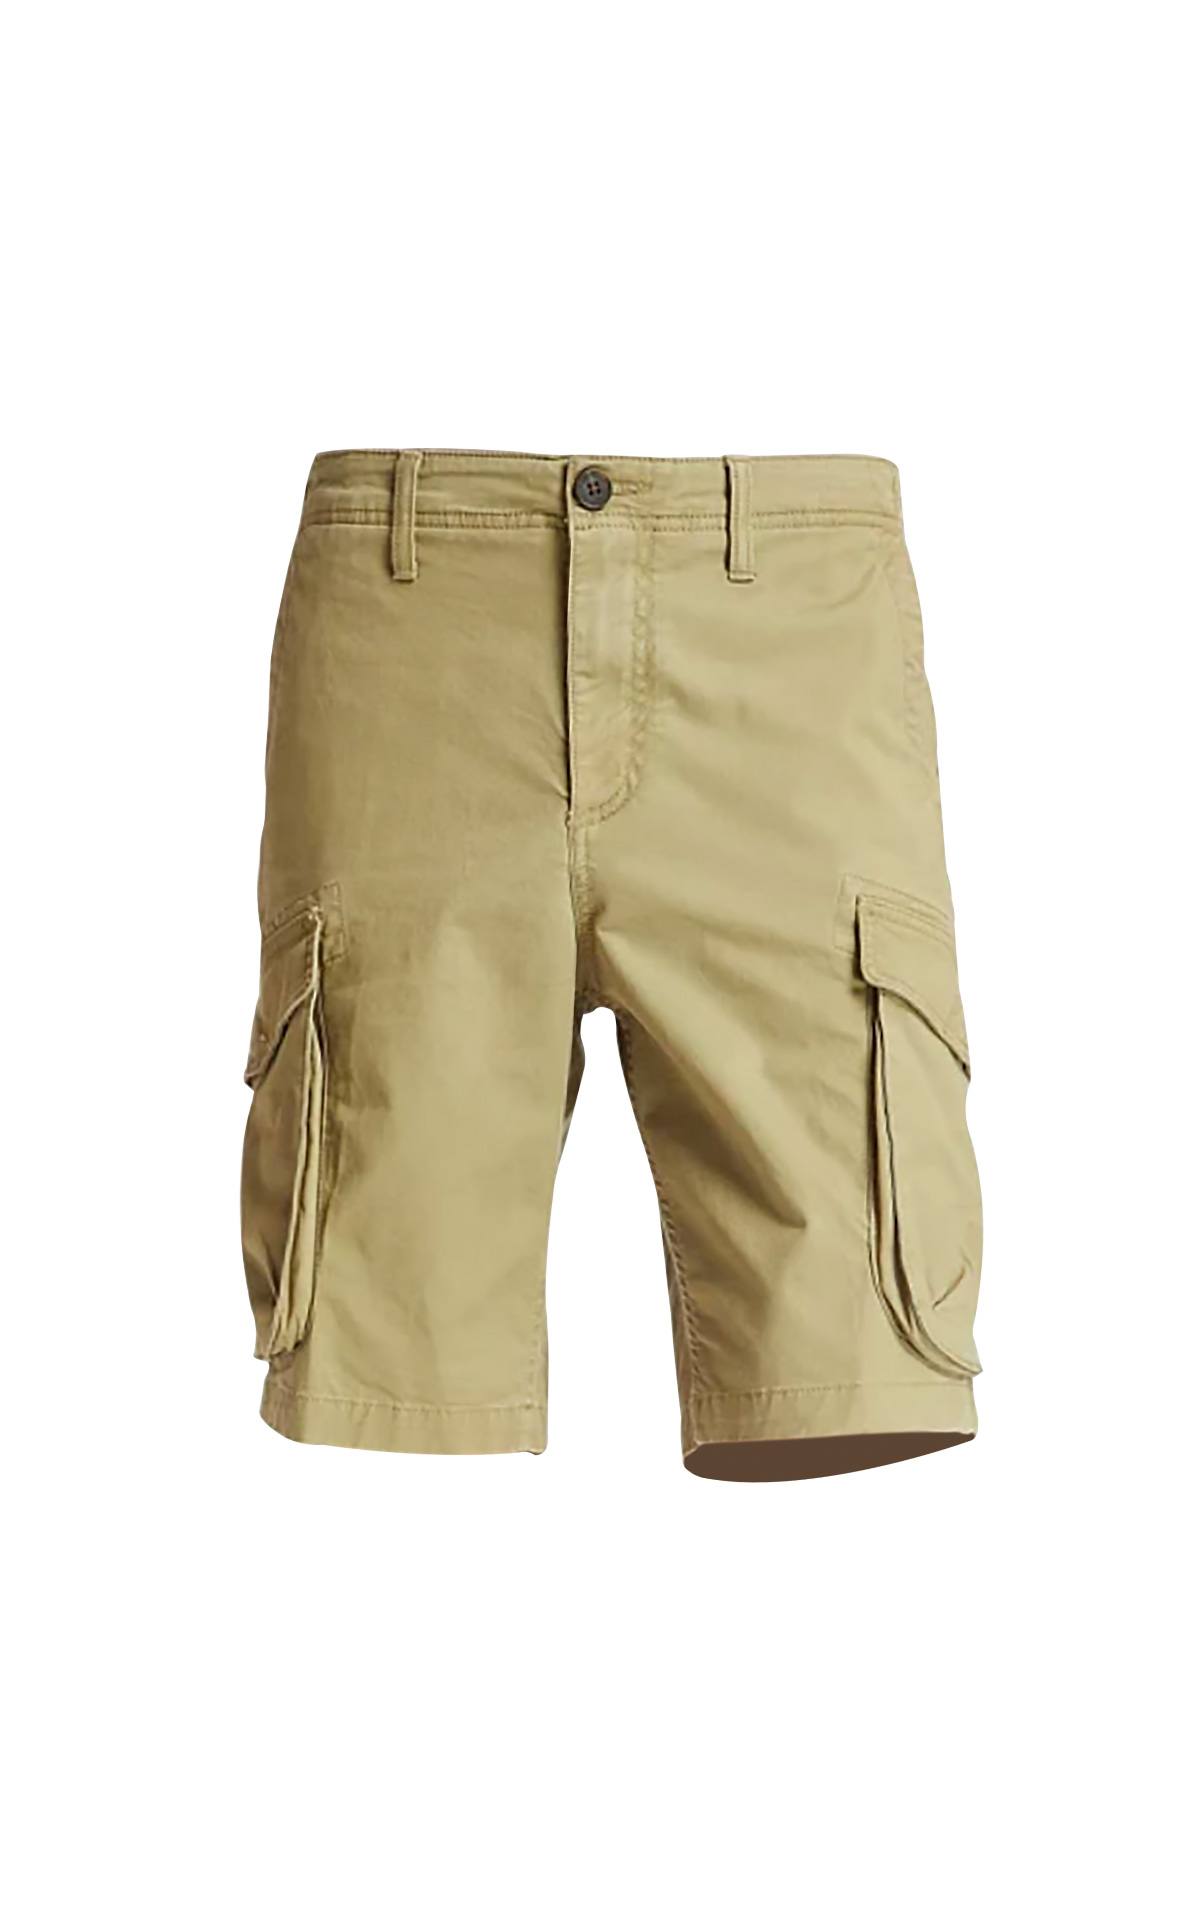 Timberland shorts at The Bicester Village Shopping Collection